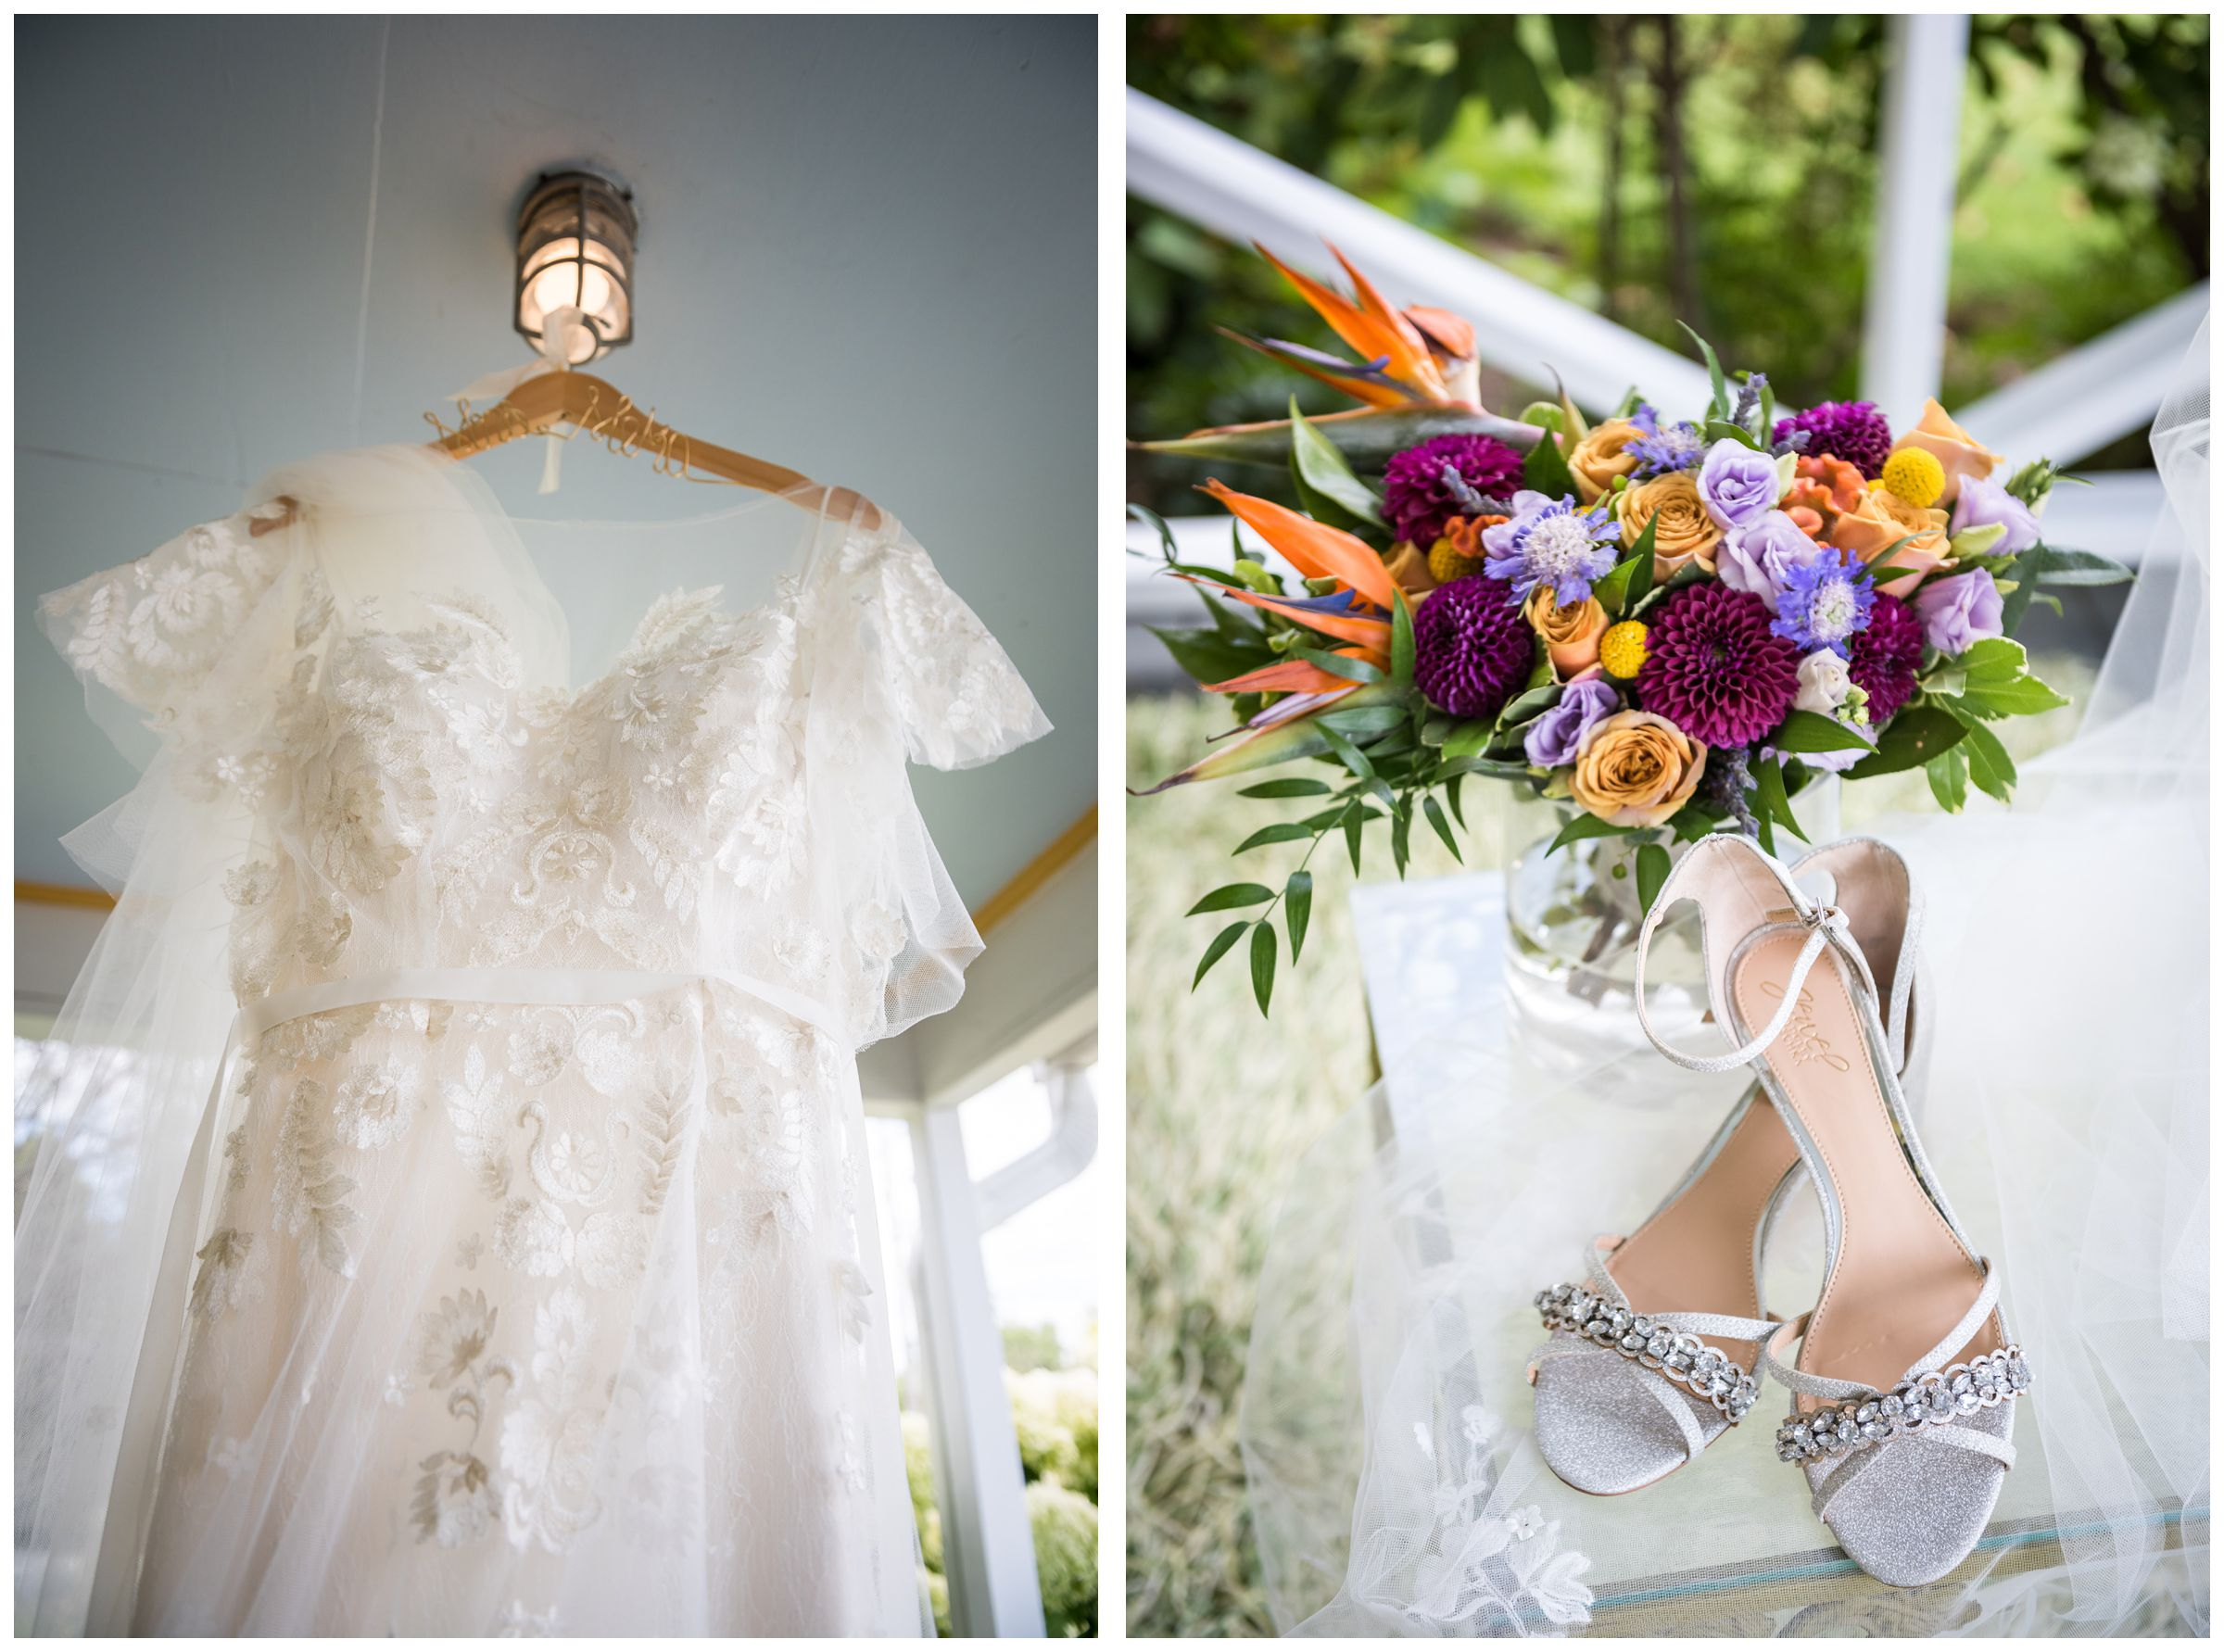 wedding dress with lace flutter sleeves and custom dress hanger, colorful purple and yellow bridal bouquet, silver shoes